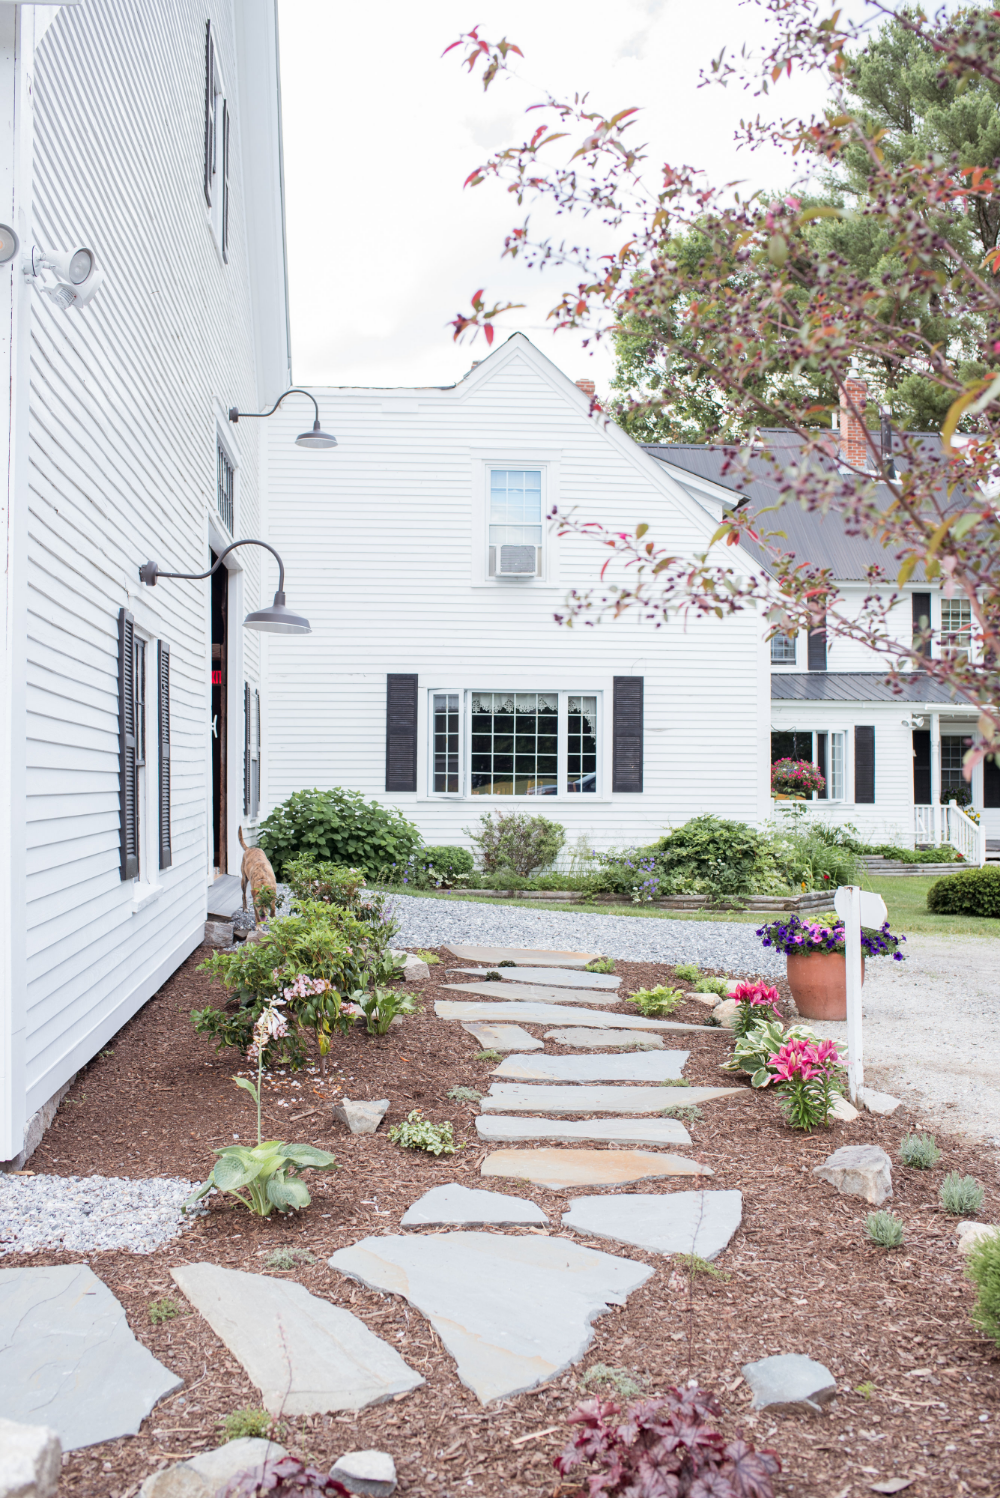 Wedding Venues in Southern Maine in 2020 | Maine wedding ...